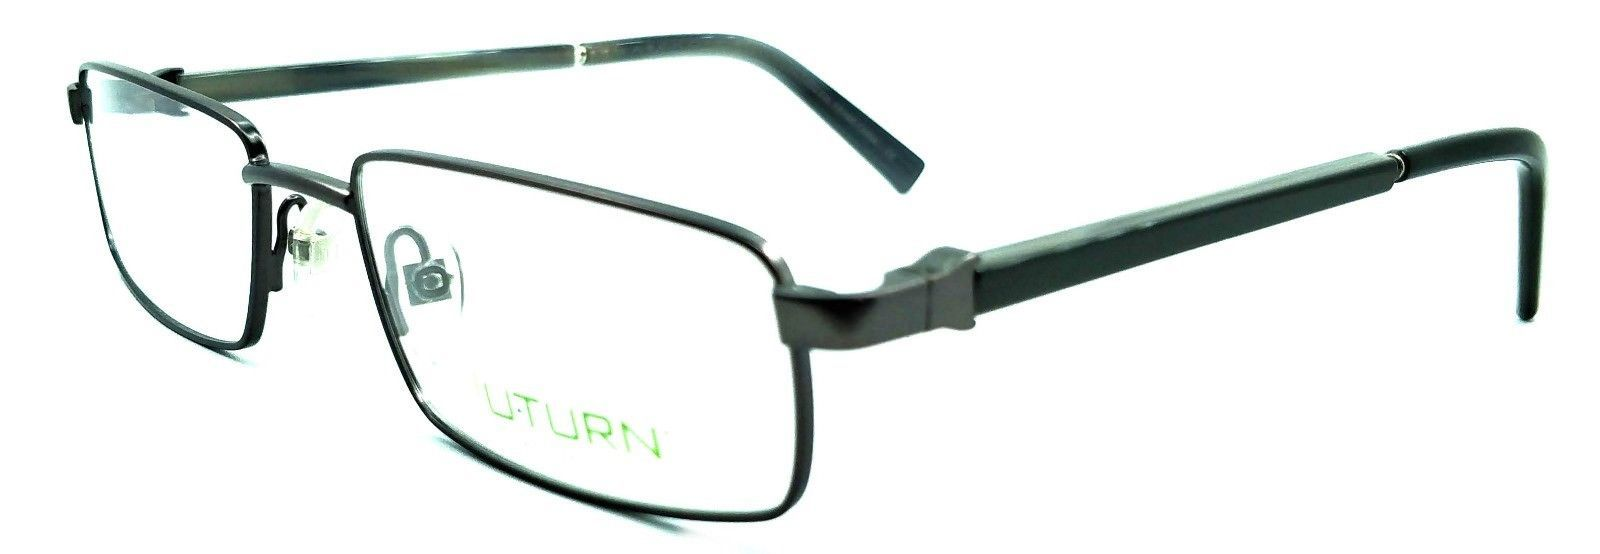 Lot of 10 U-Turn 110 by Marchon Rx Eyeglass and 50 similar items